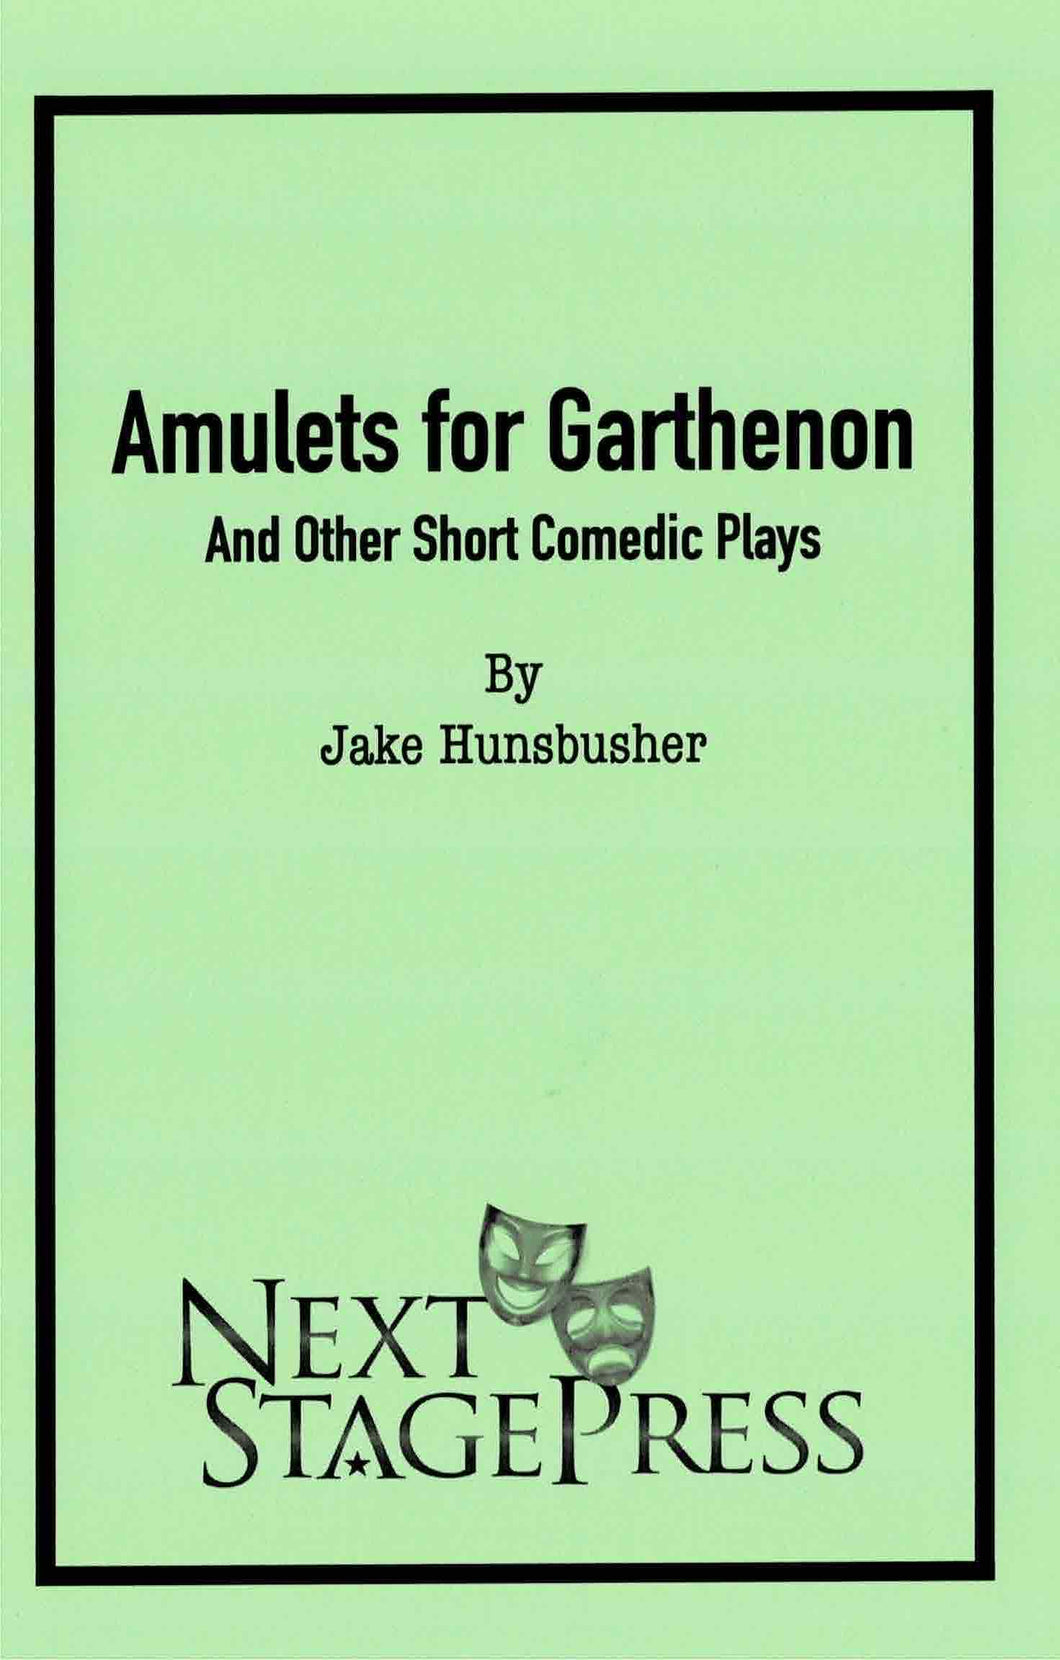 Amulets for Garthenon and Other Short Comedic Plays  - Digital Version